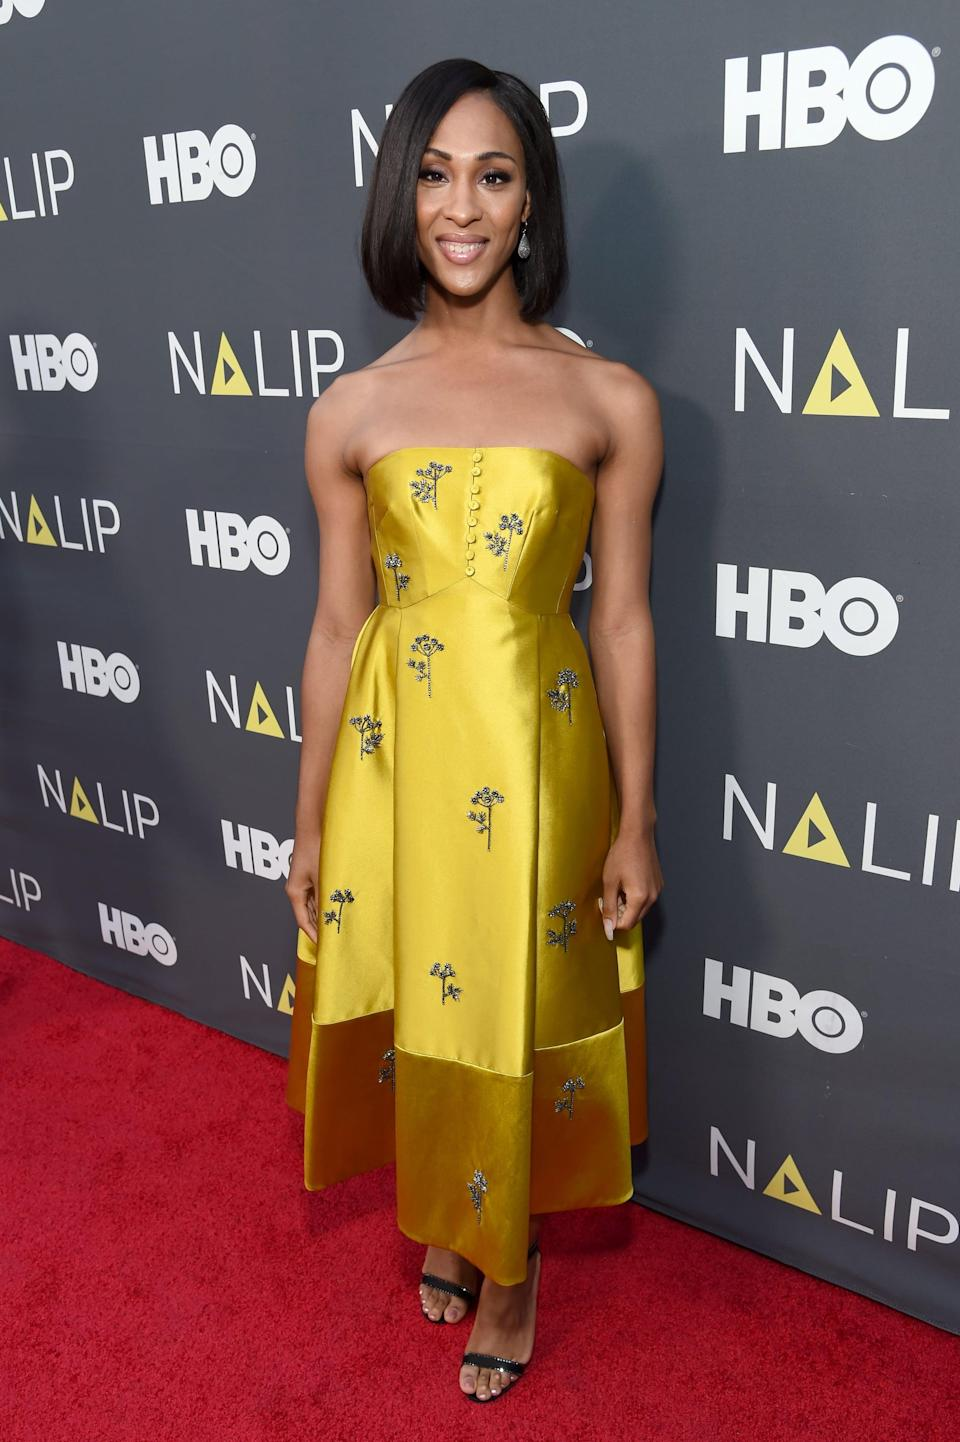 <p>Again, Mj glowed in yellow at the Latino Media Awards in July 2019, coordinating her dress with Jimmy Choo sandals.</p>